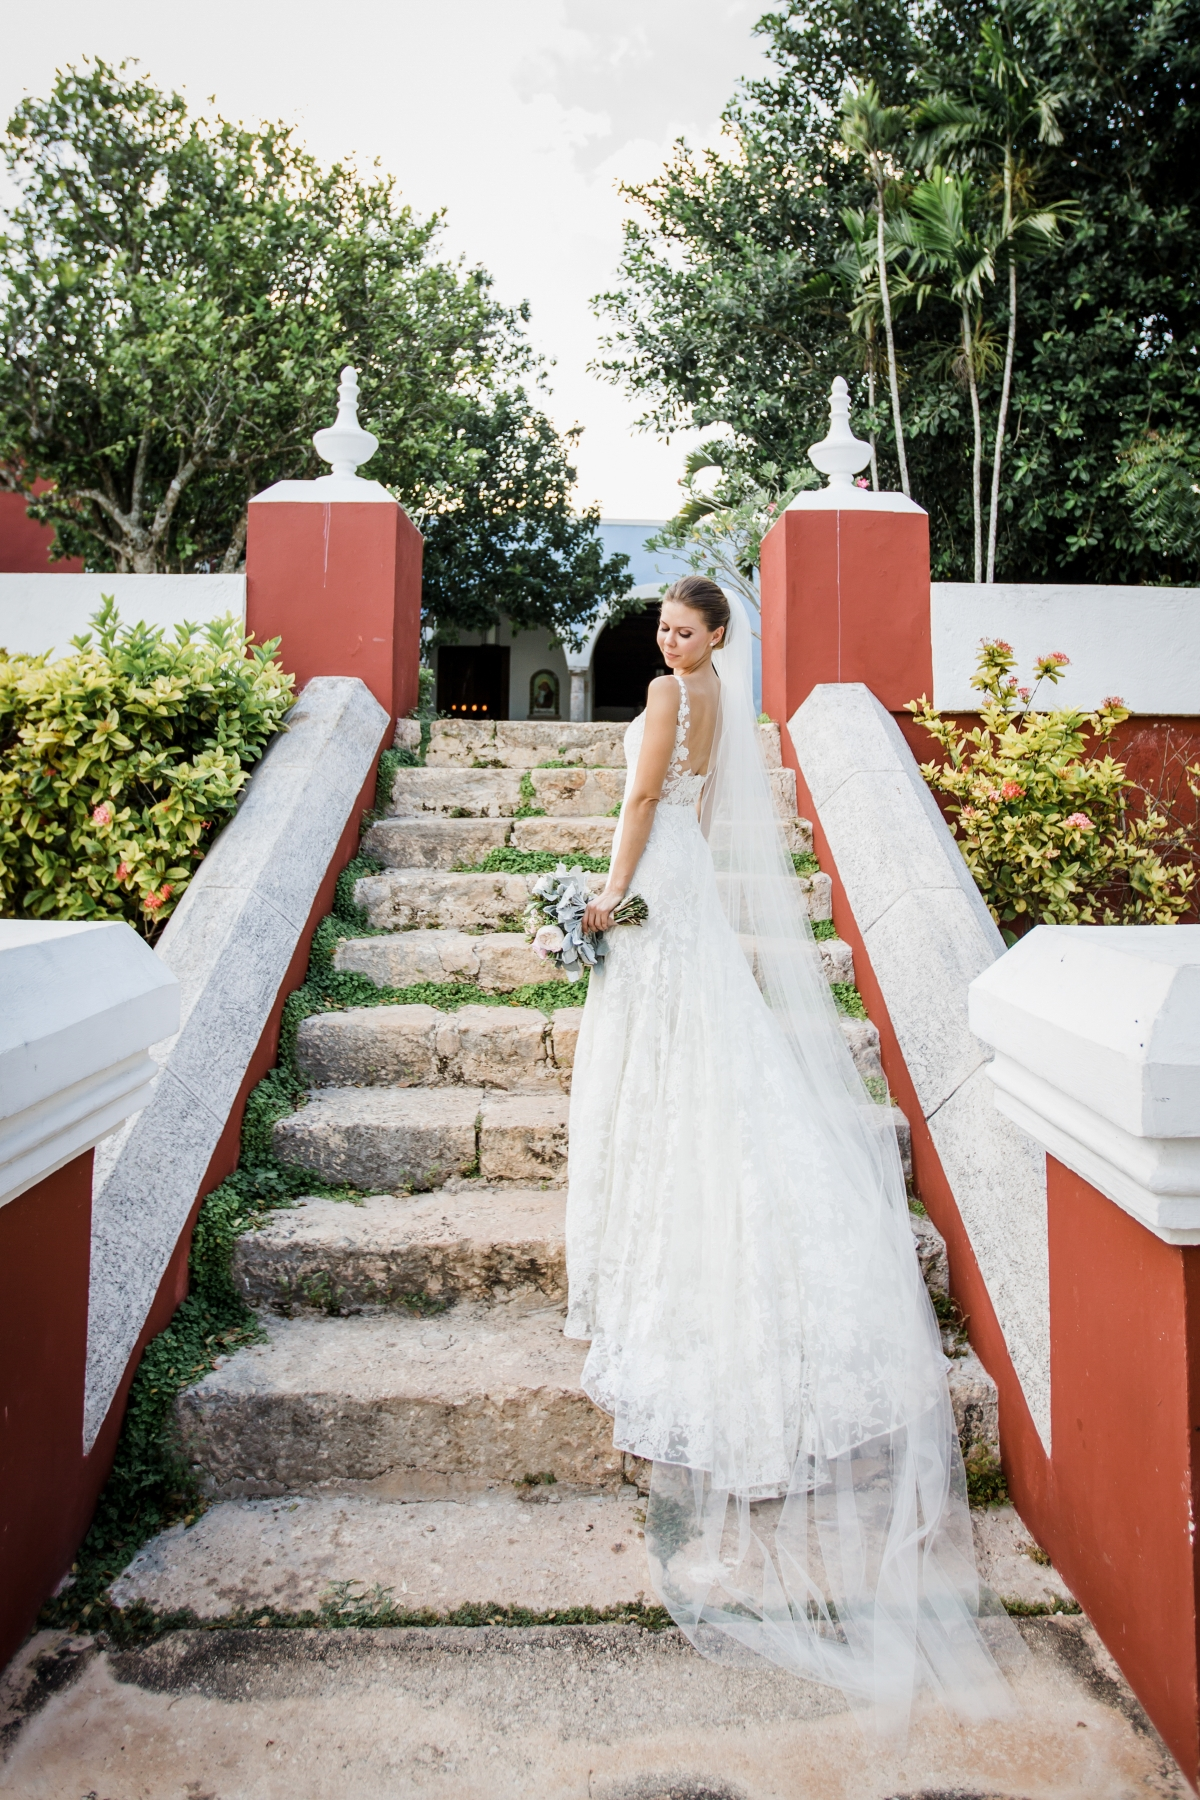 898_elizabeth medina photography 0255 Confessions of a Yucatan Bride, Yucatan Destination Wedding Photography from A Merida Bride's Planning Diary